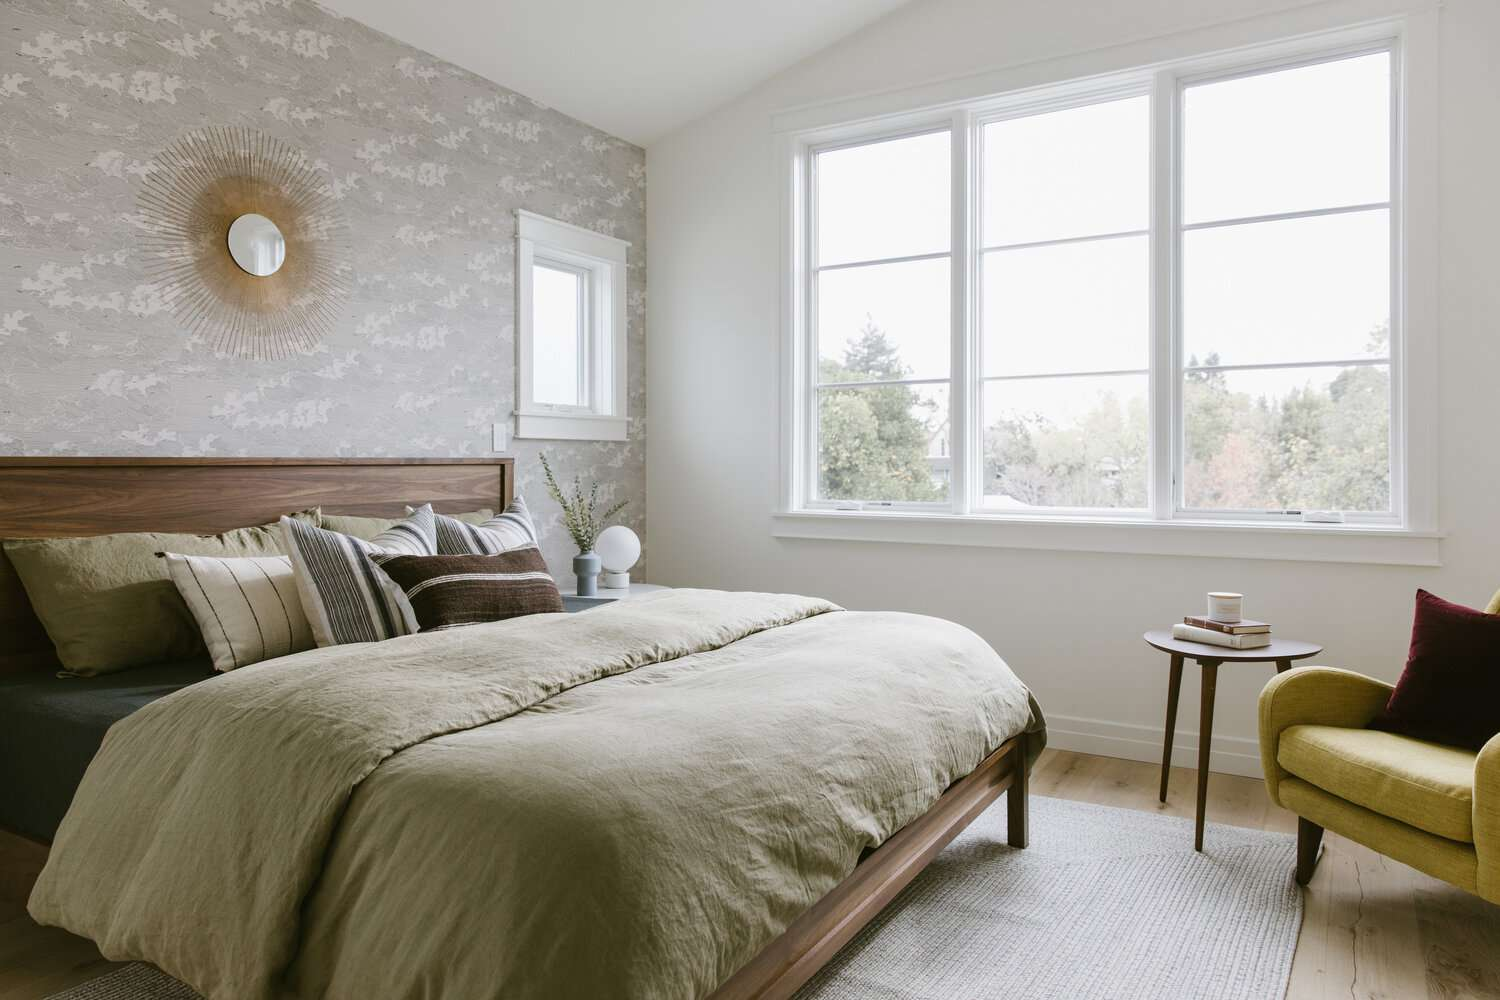 Modern bedroom with gray abstract wallpaper and green bedding